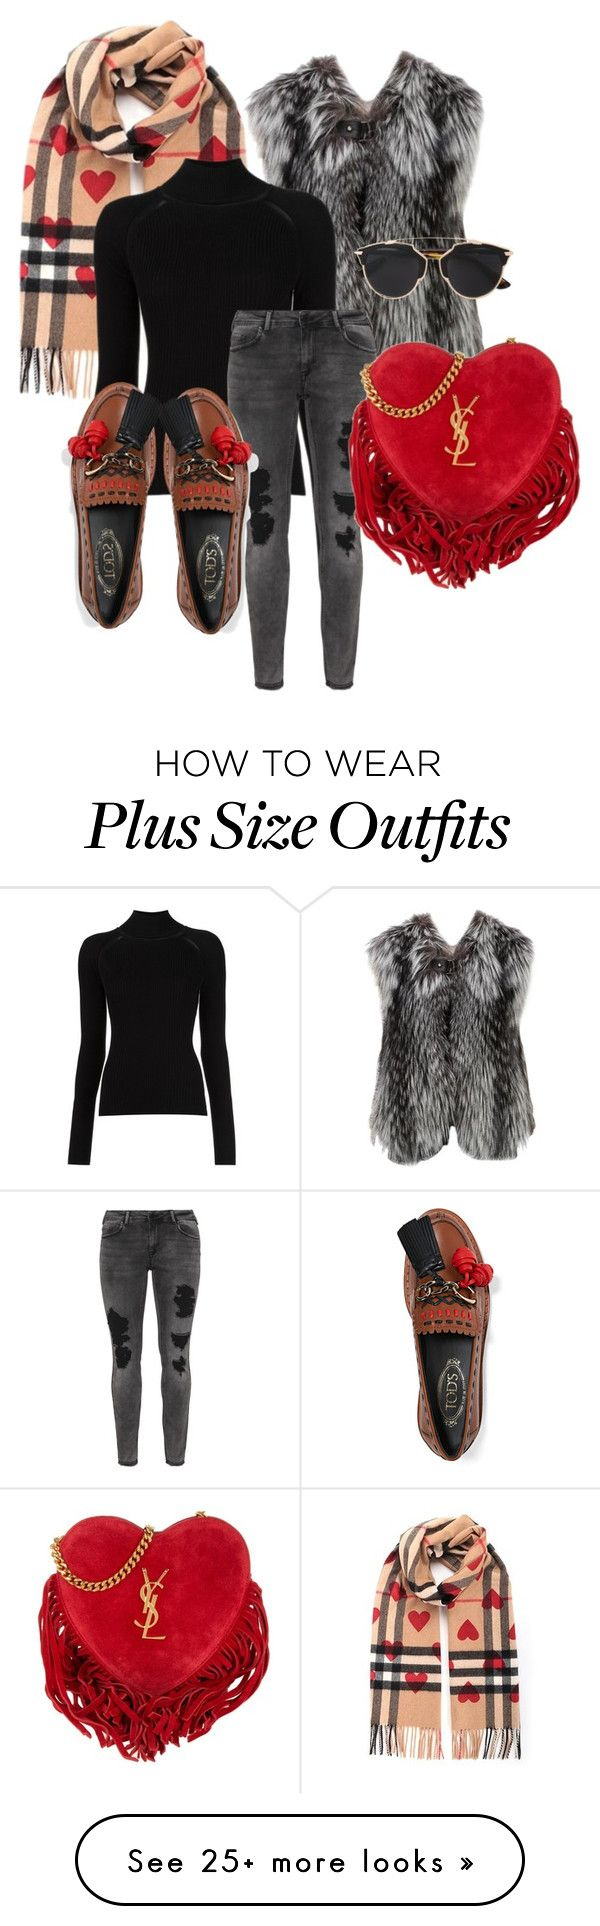 """""""Winter III"""" by beatricechan on Polyvore featuring Burberry, Louis Vuitton, Misha Nonoo, Zizzi, Tod's, Yves Saint Laurent and Christian Dior"""